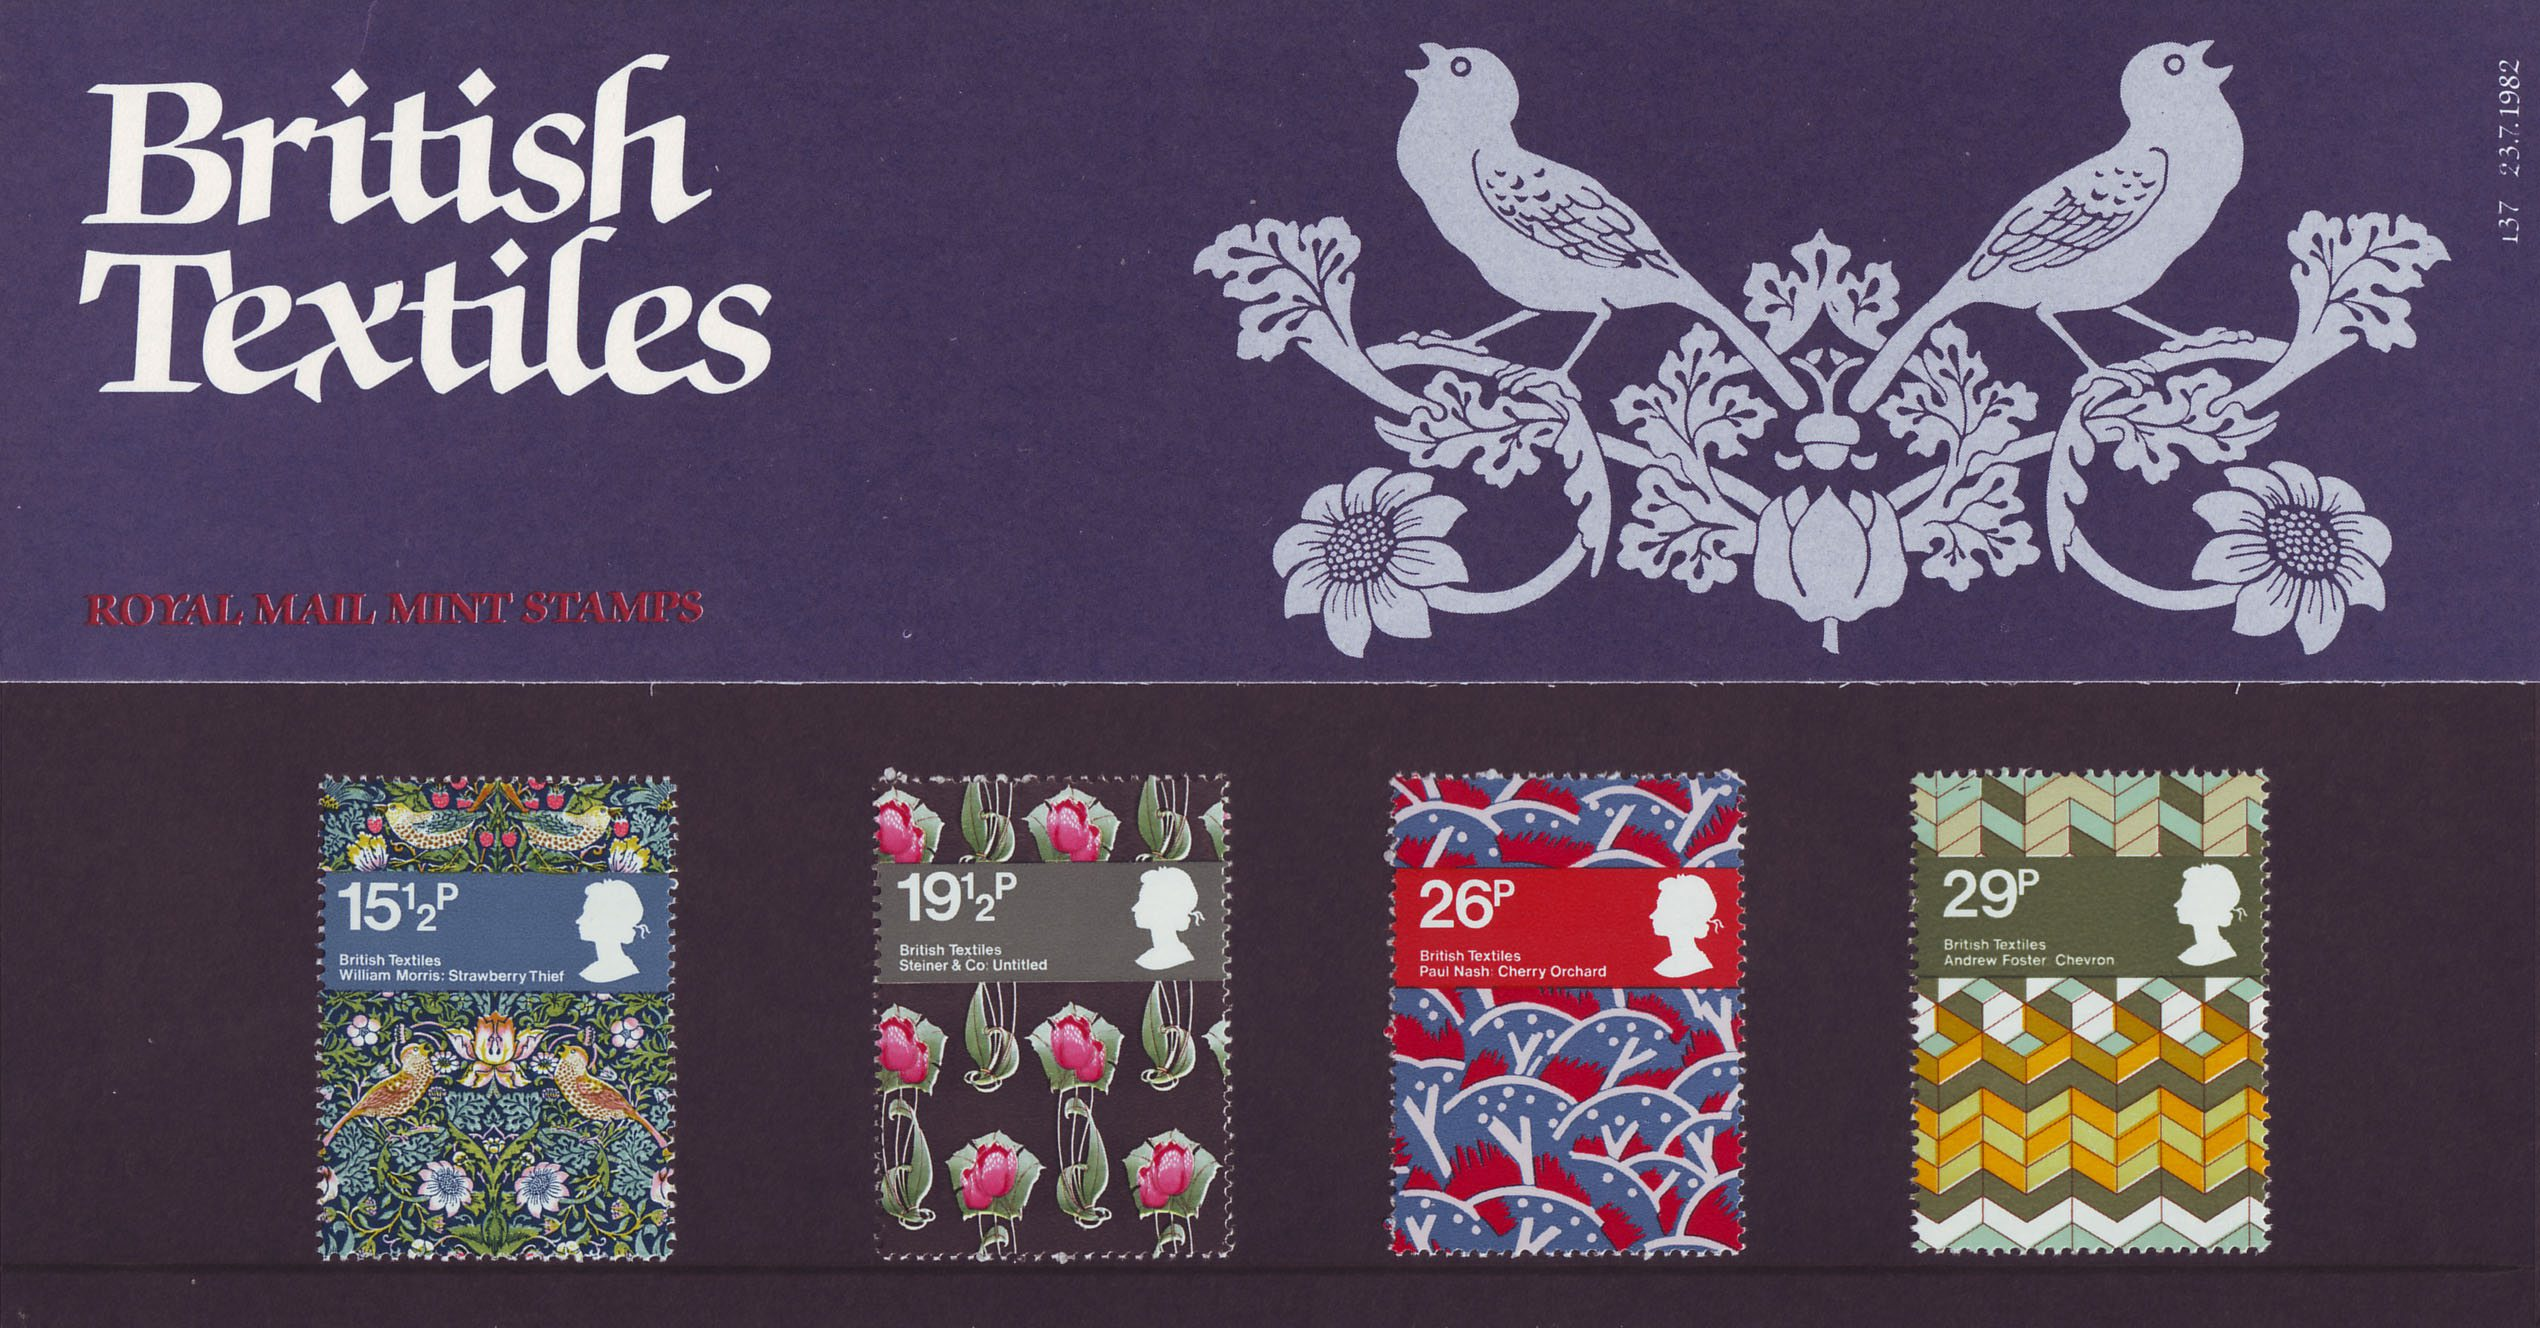 British Textiles 1982 Collect GB Stamps